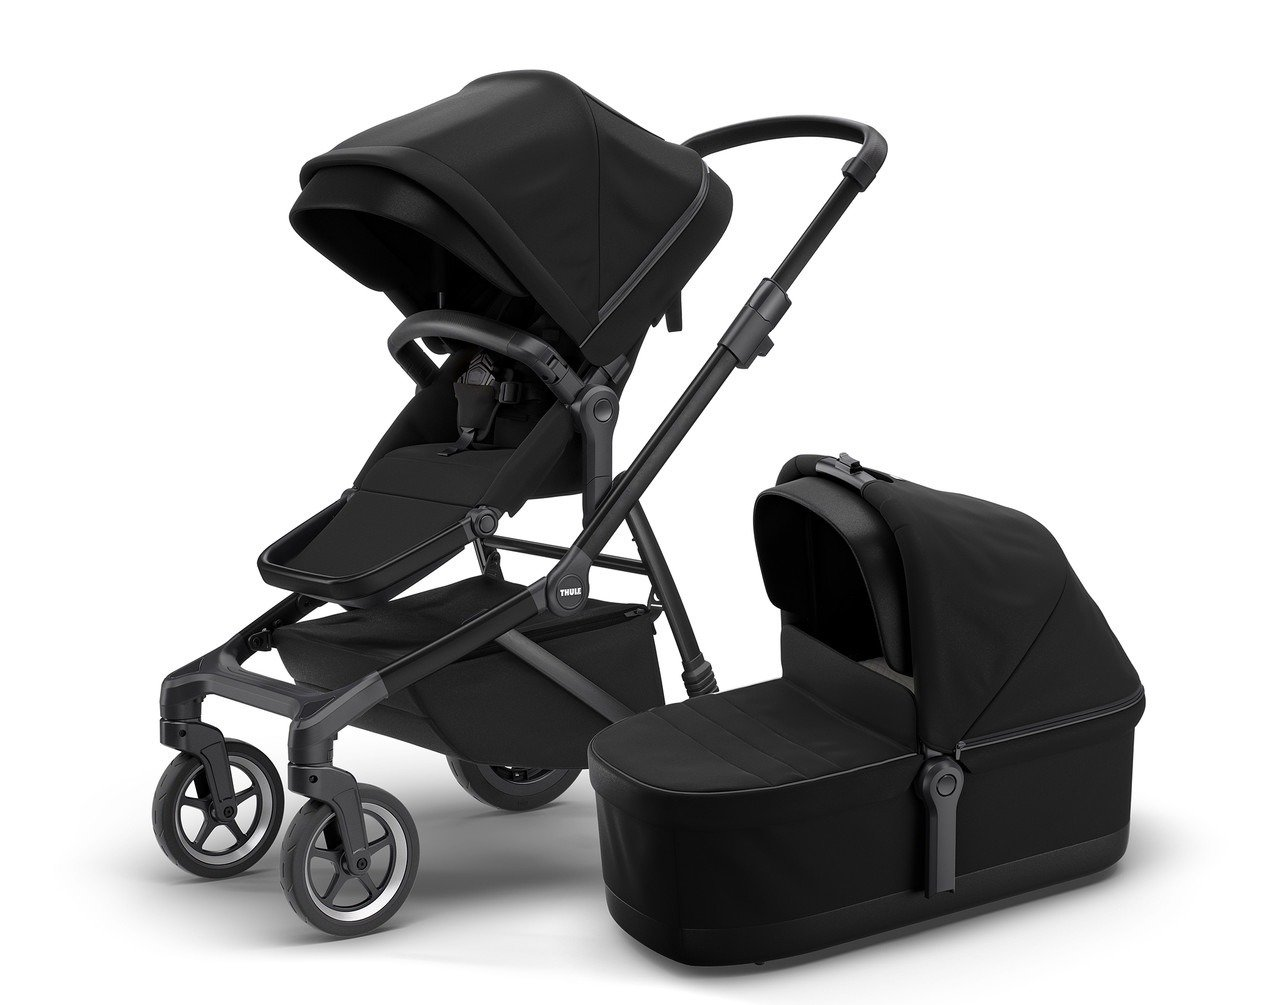 Thule Sleek + Bassinet + Main Seat - Midnight Black